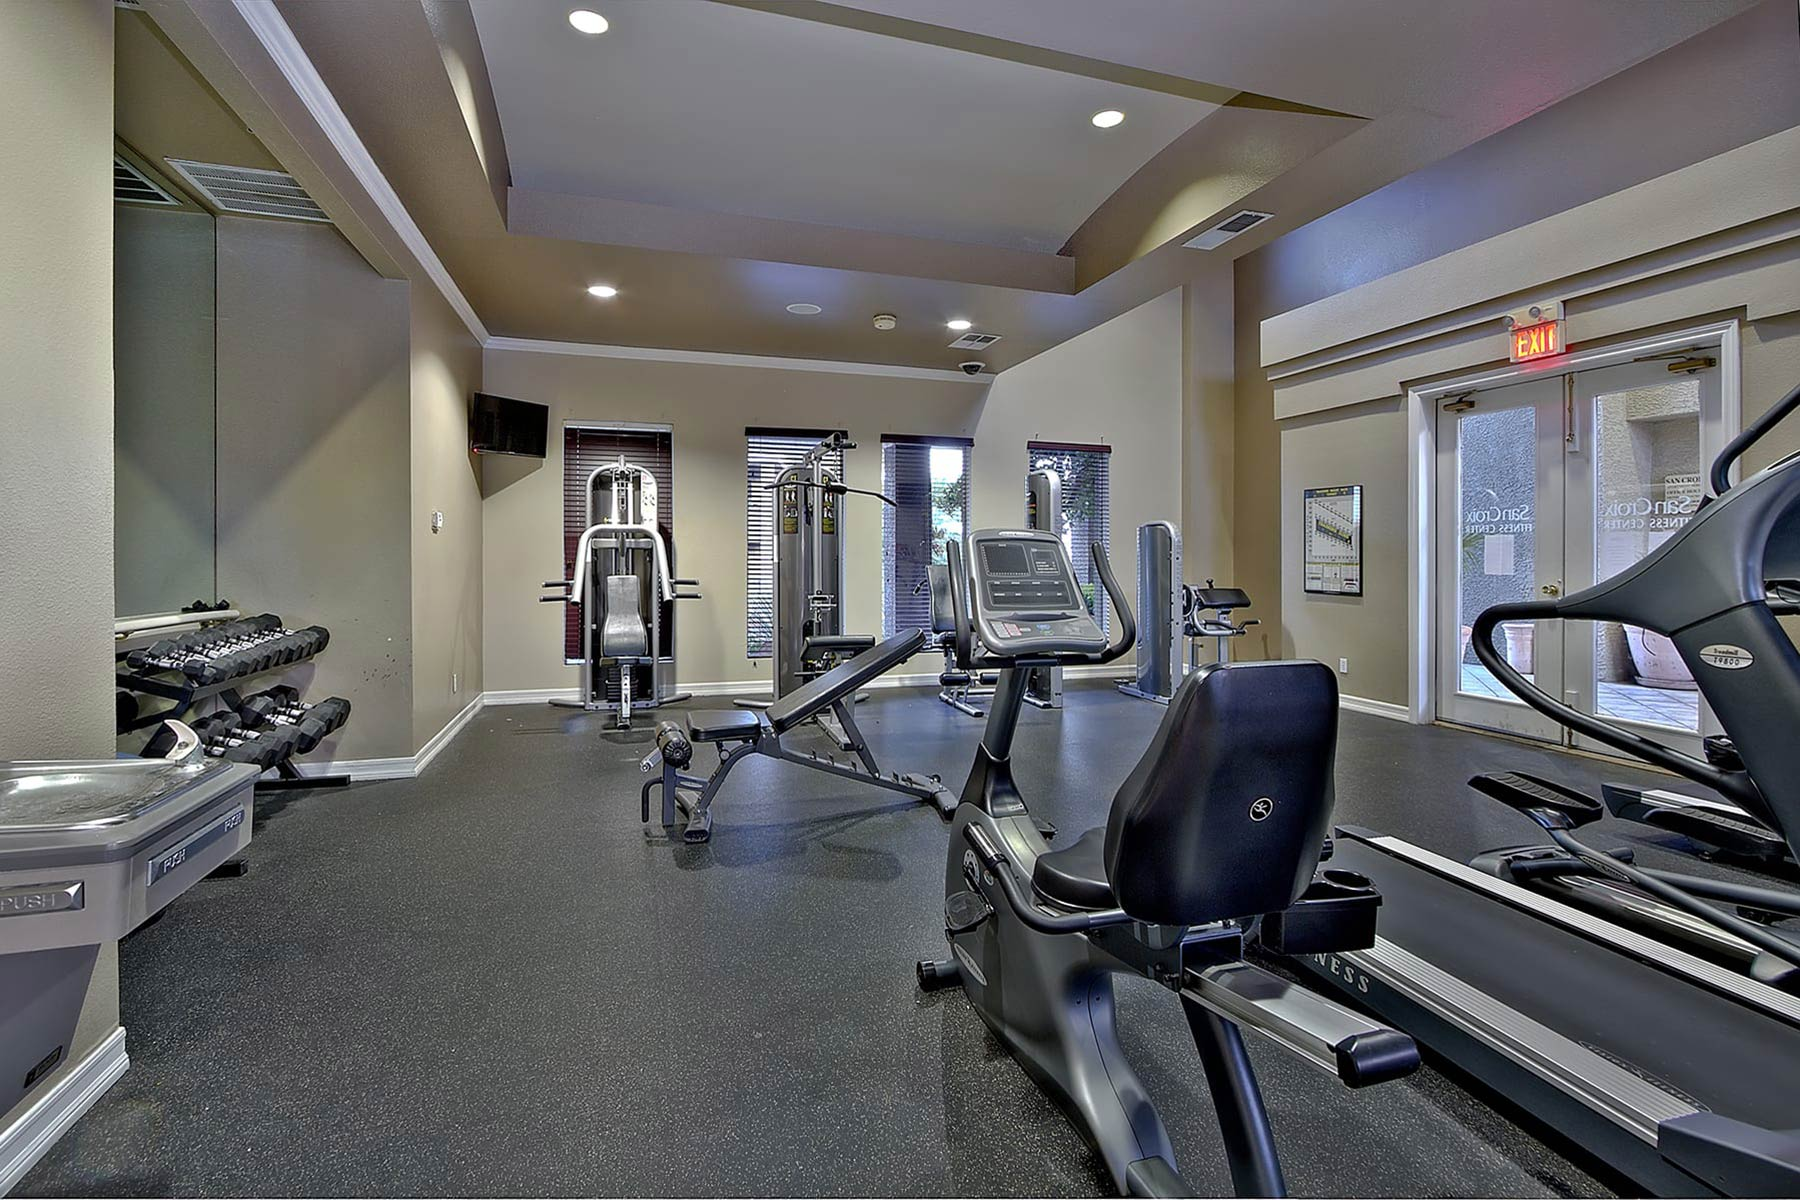 San Croix's fitness center with a selection of weight machines and cardio equipment.